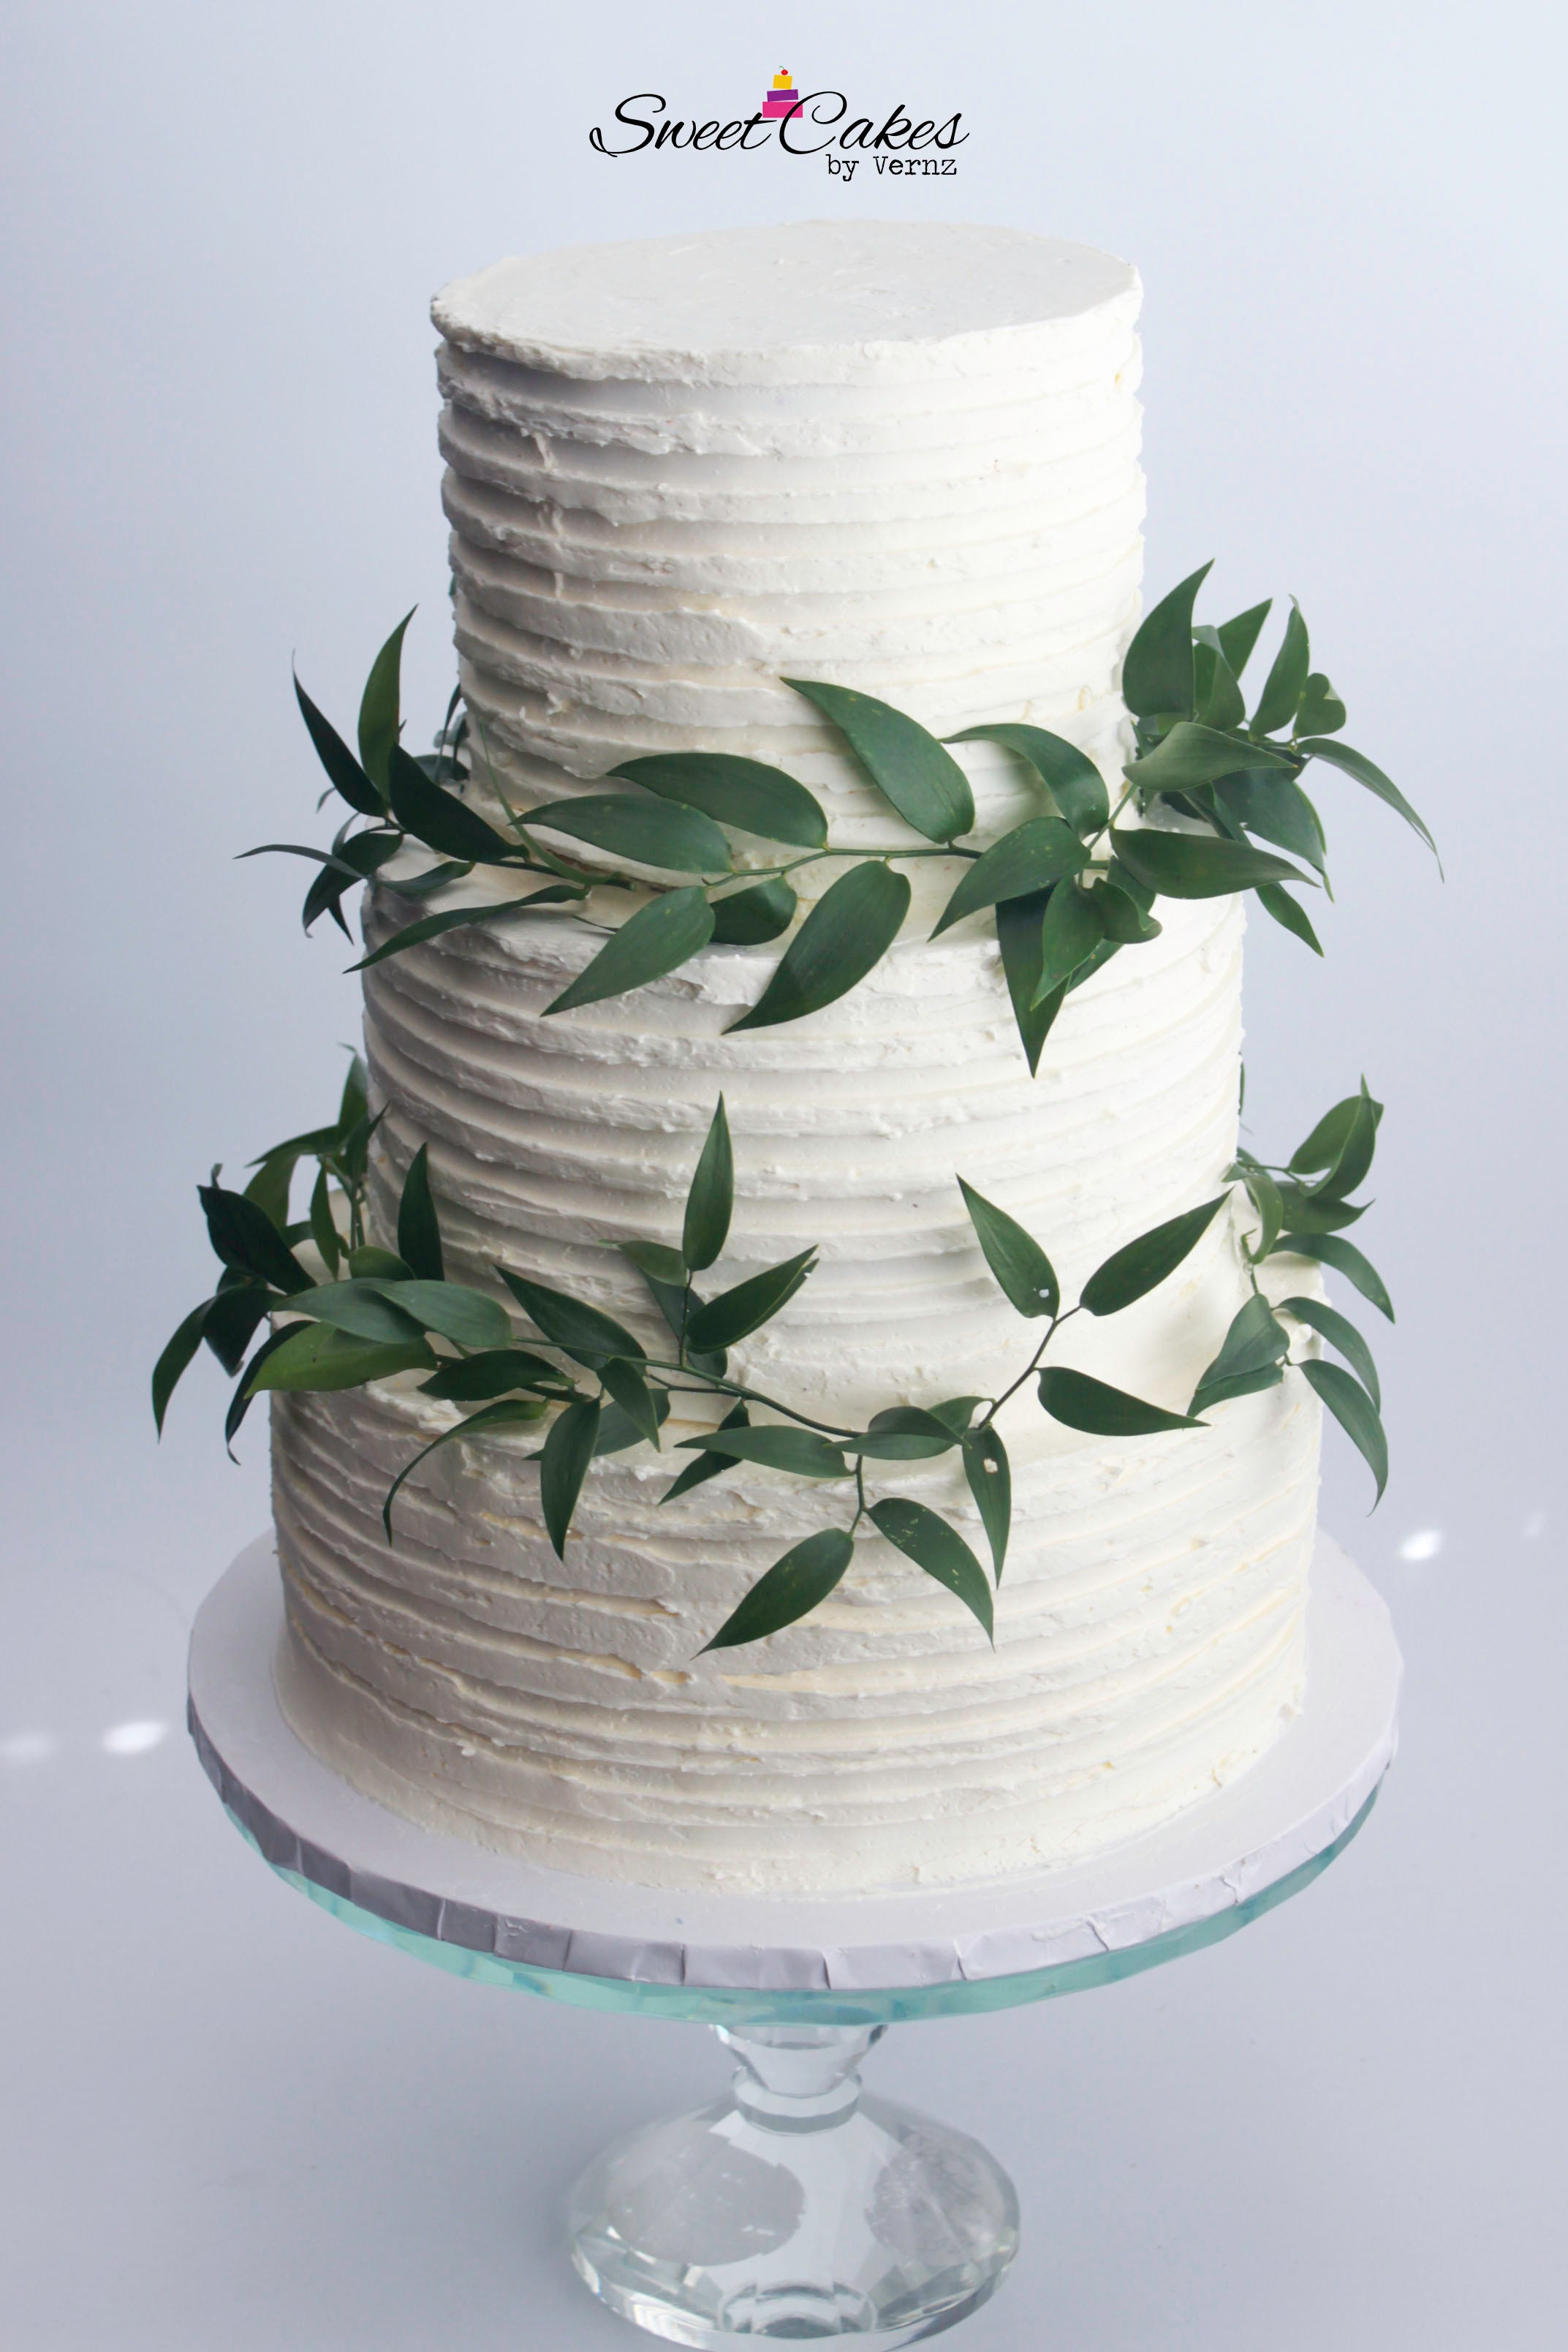 Wedding Cake 3 Tiered Cake (65ppl)